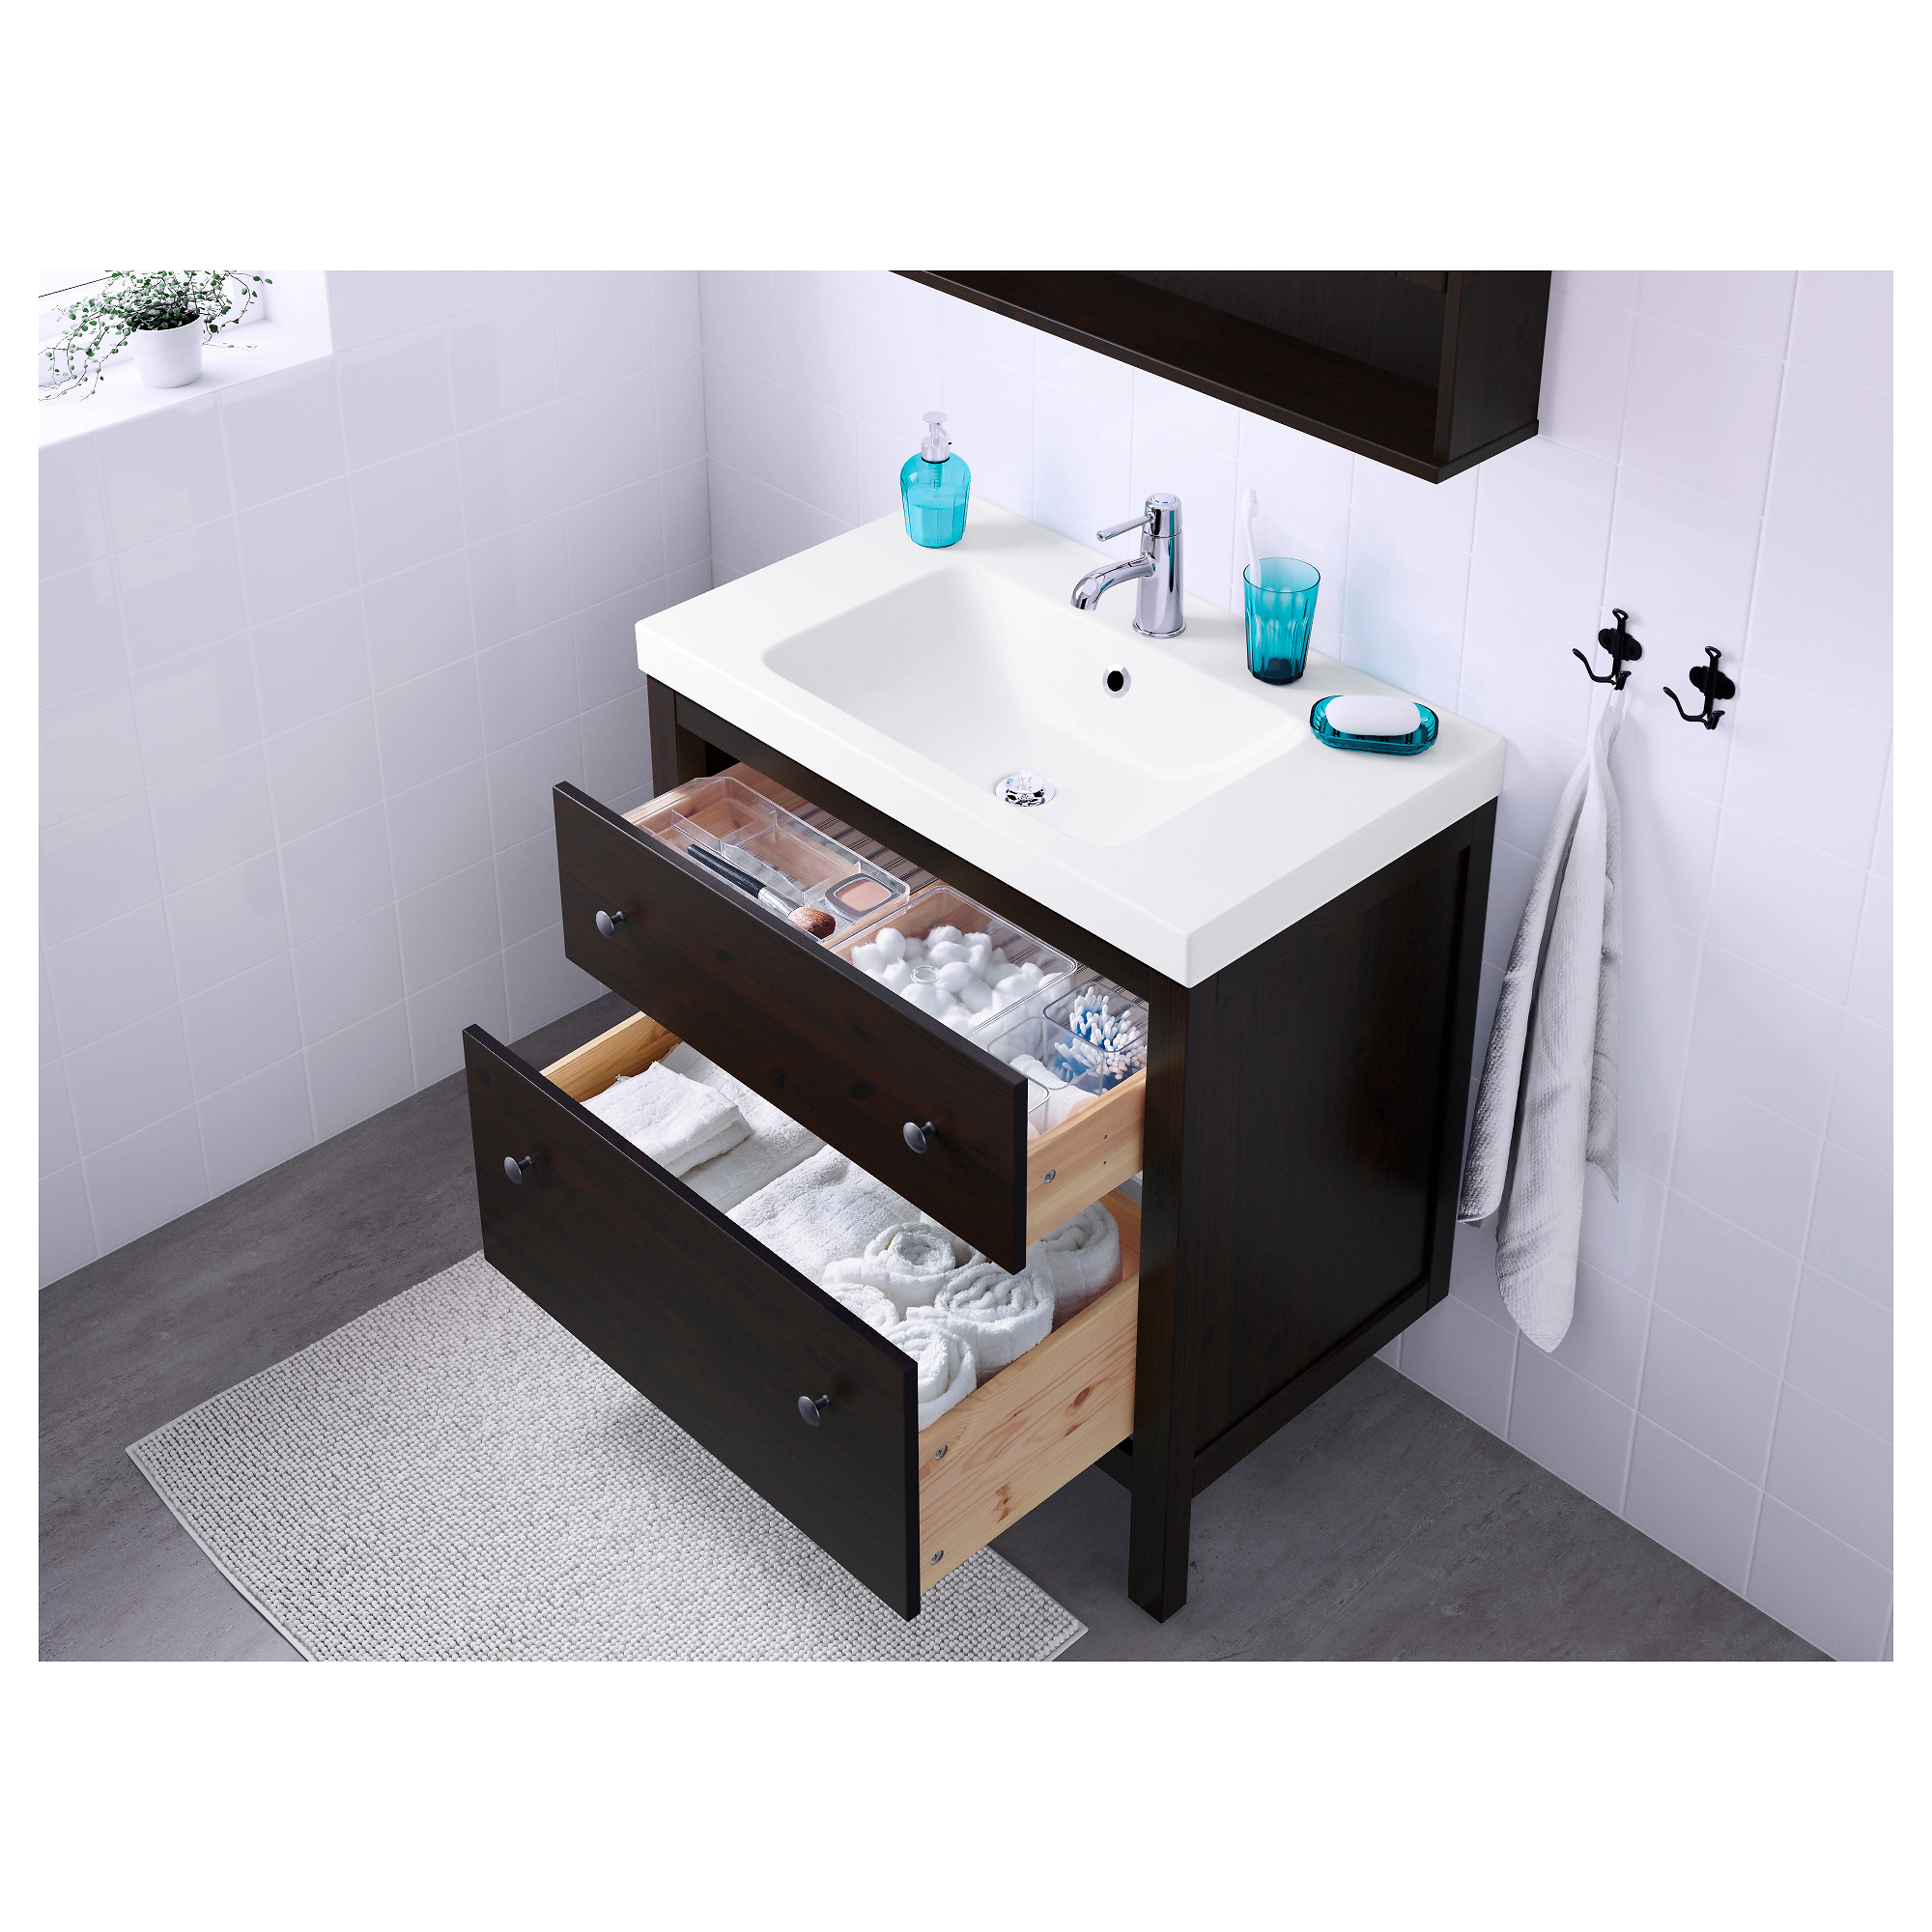 HEMNES / ODENSVIK Sink Cabinet With 2 Drawers   White   IKEA